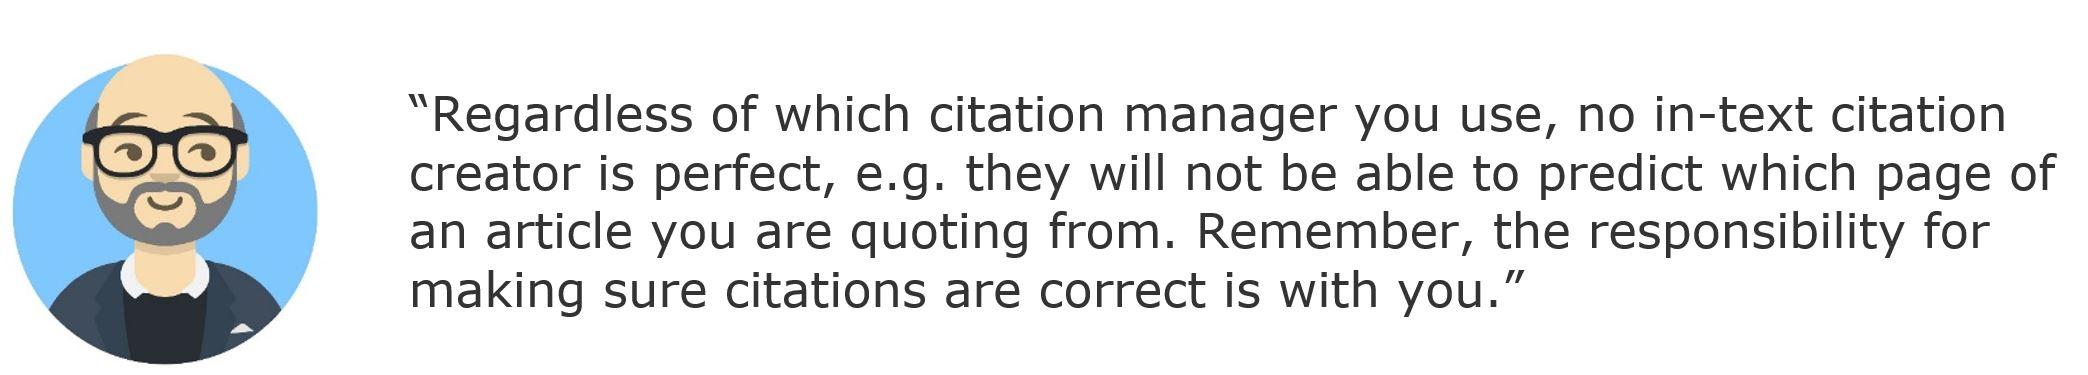 librarian avatar with quote on citation mangers not being perfect